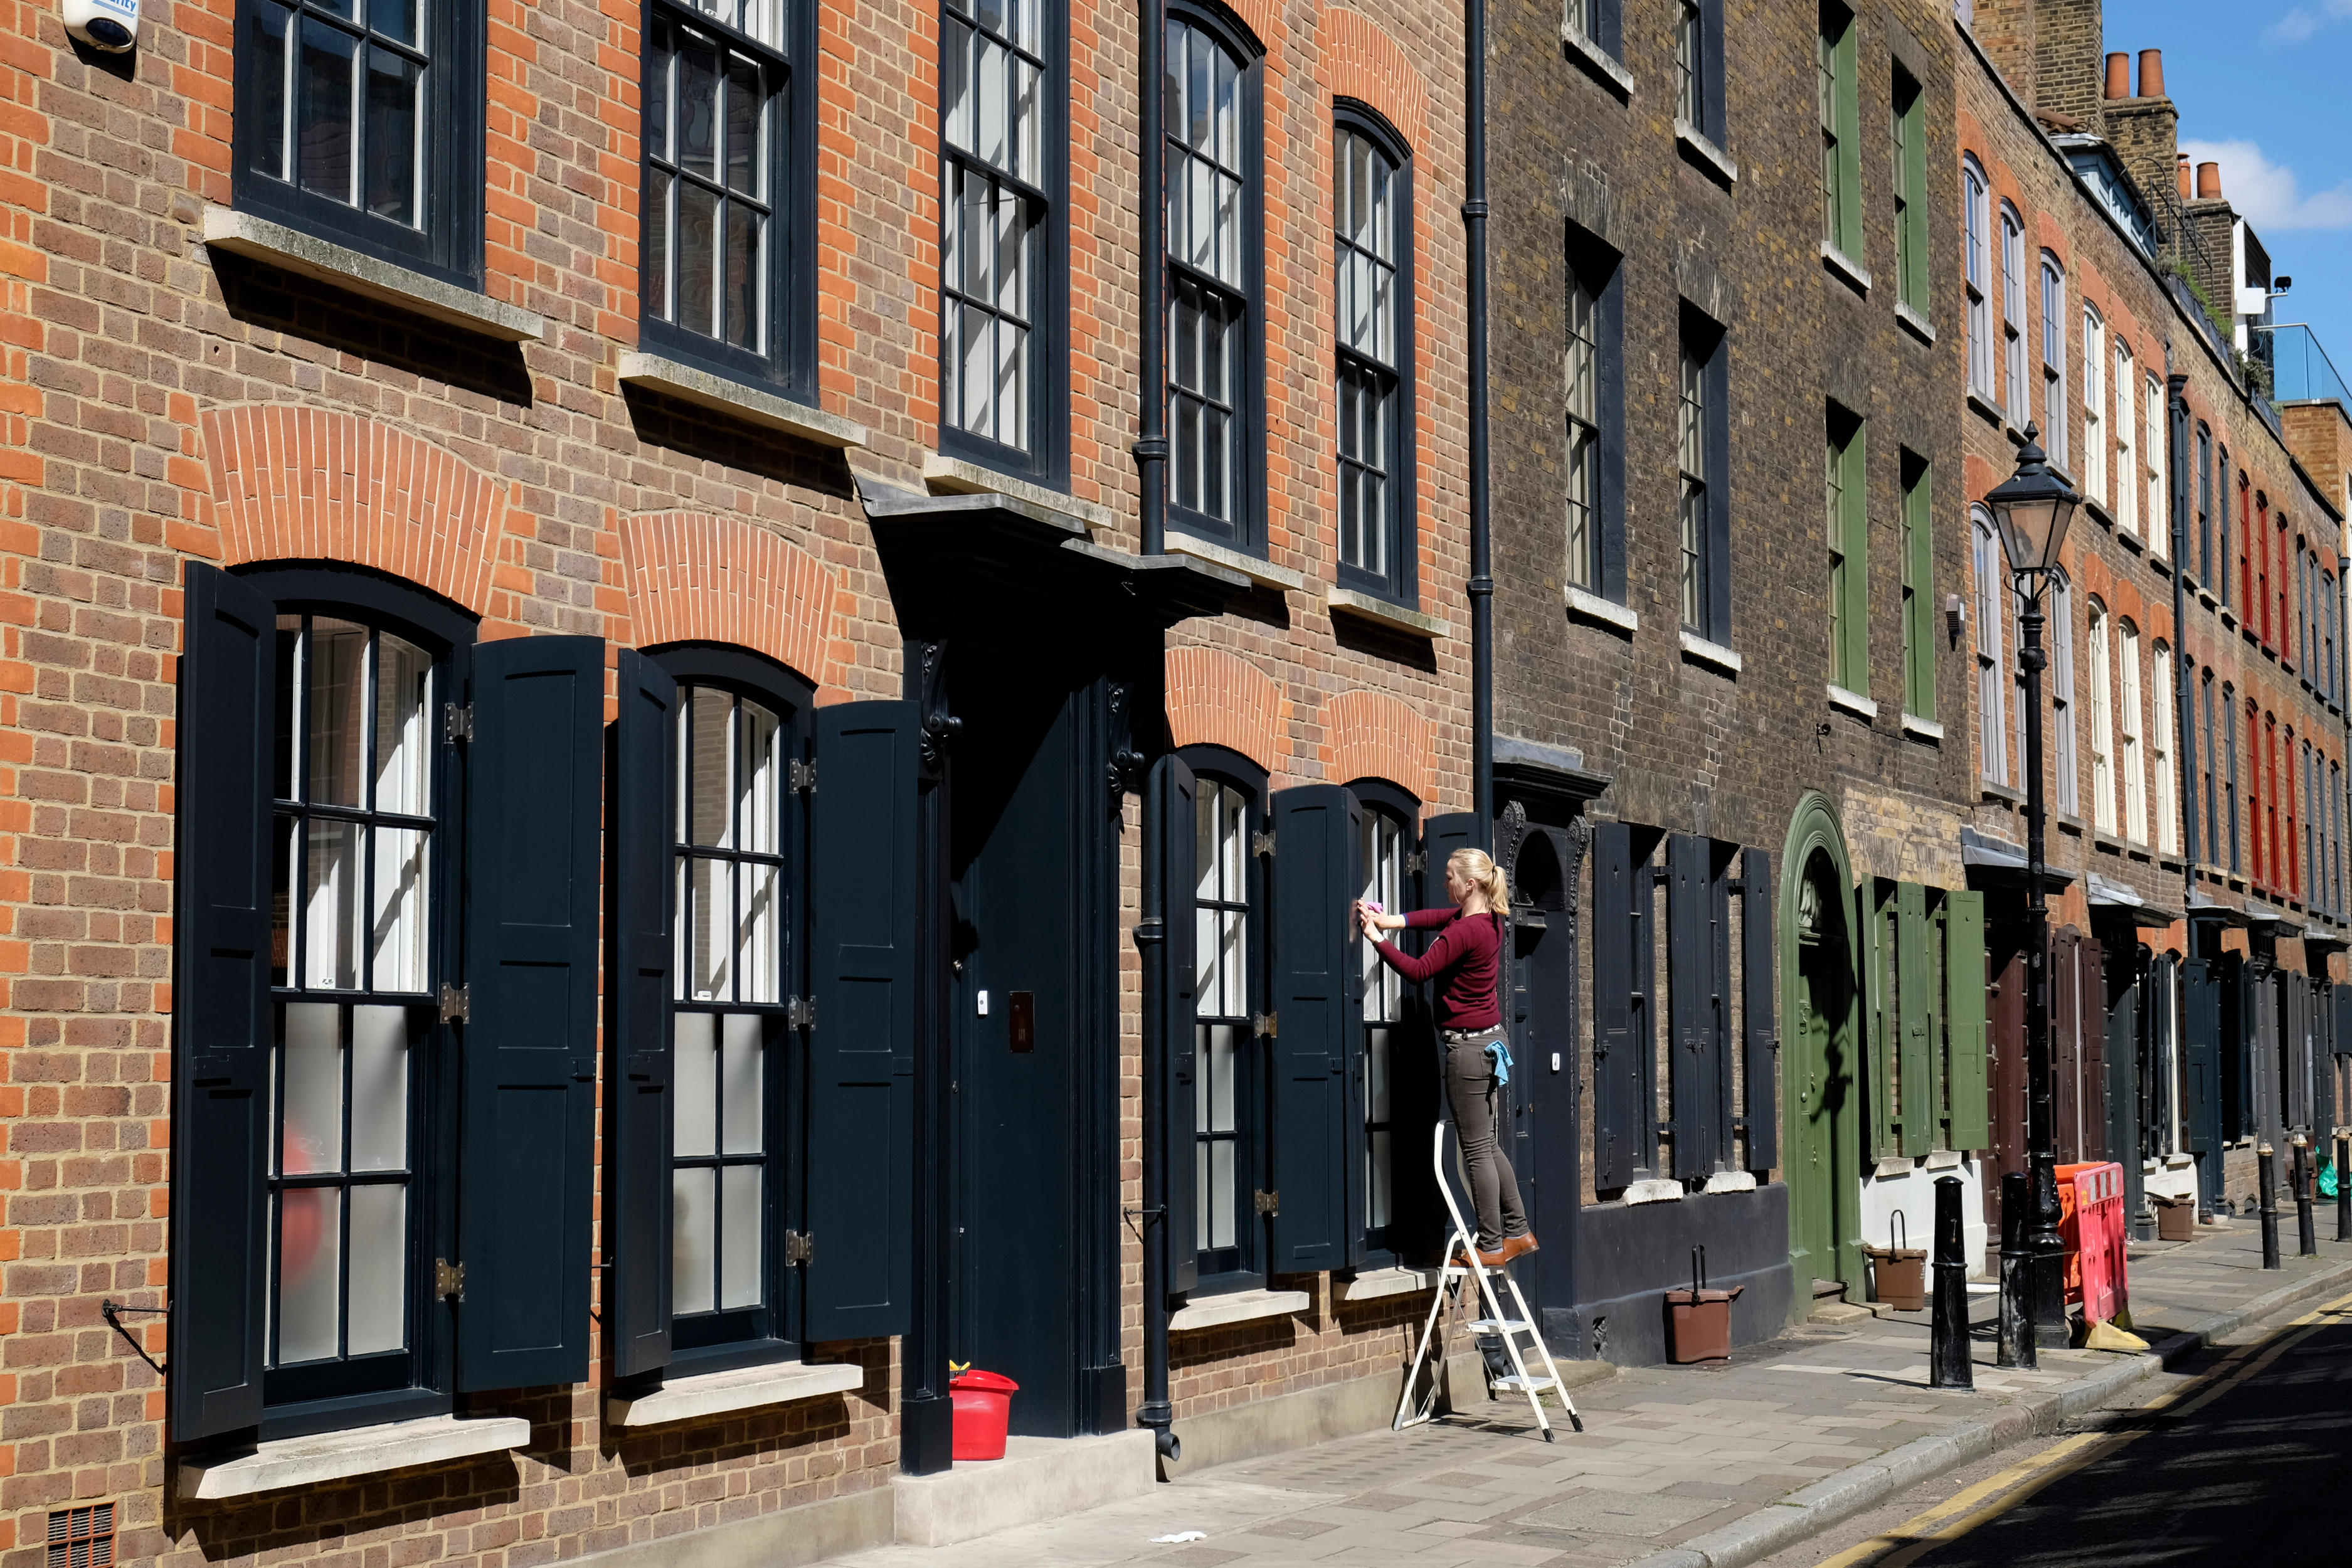 Shoreditch life: How a little-loved corner of London became a hotbed of art, culture and £5m loft apartments